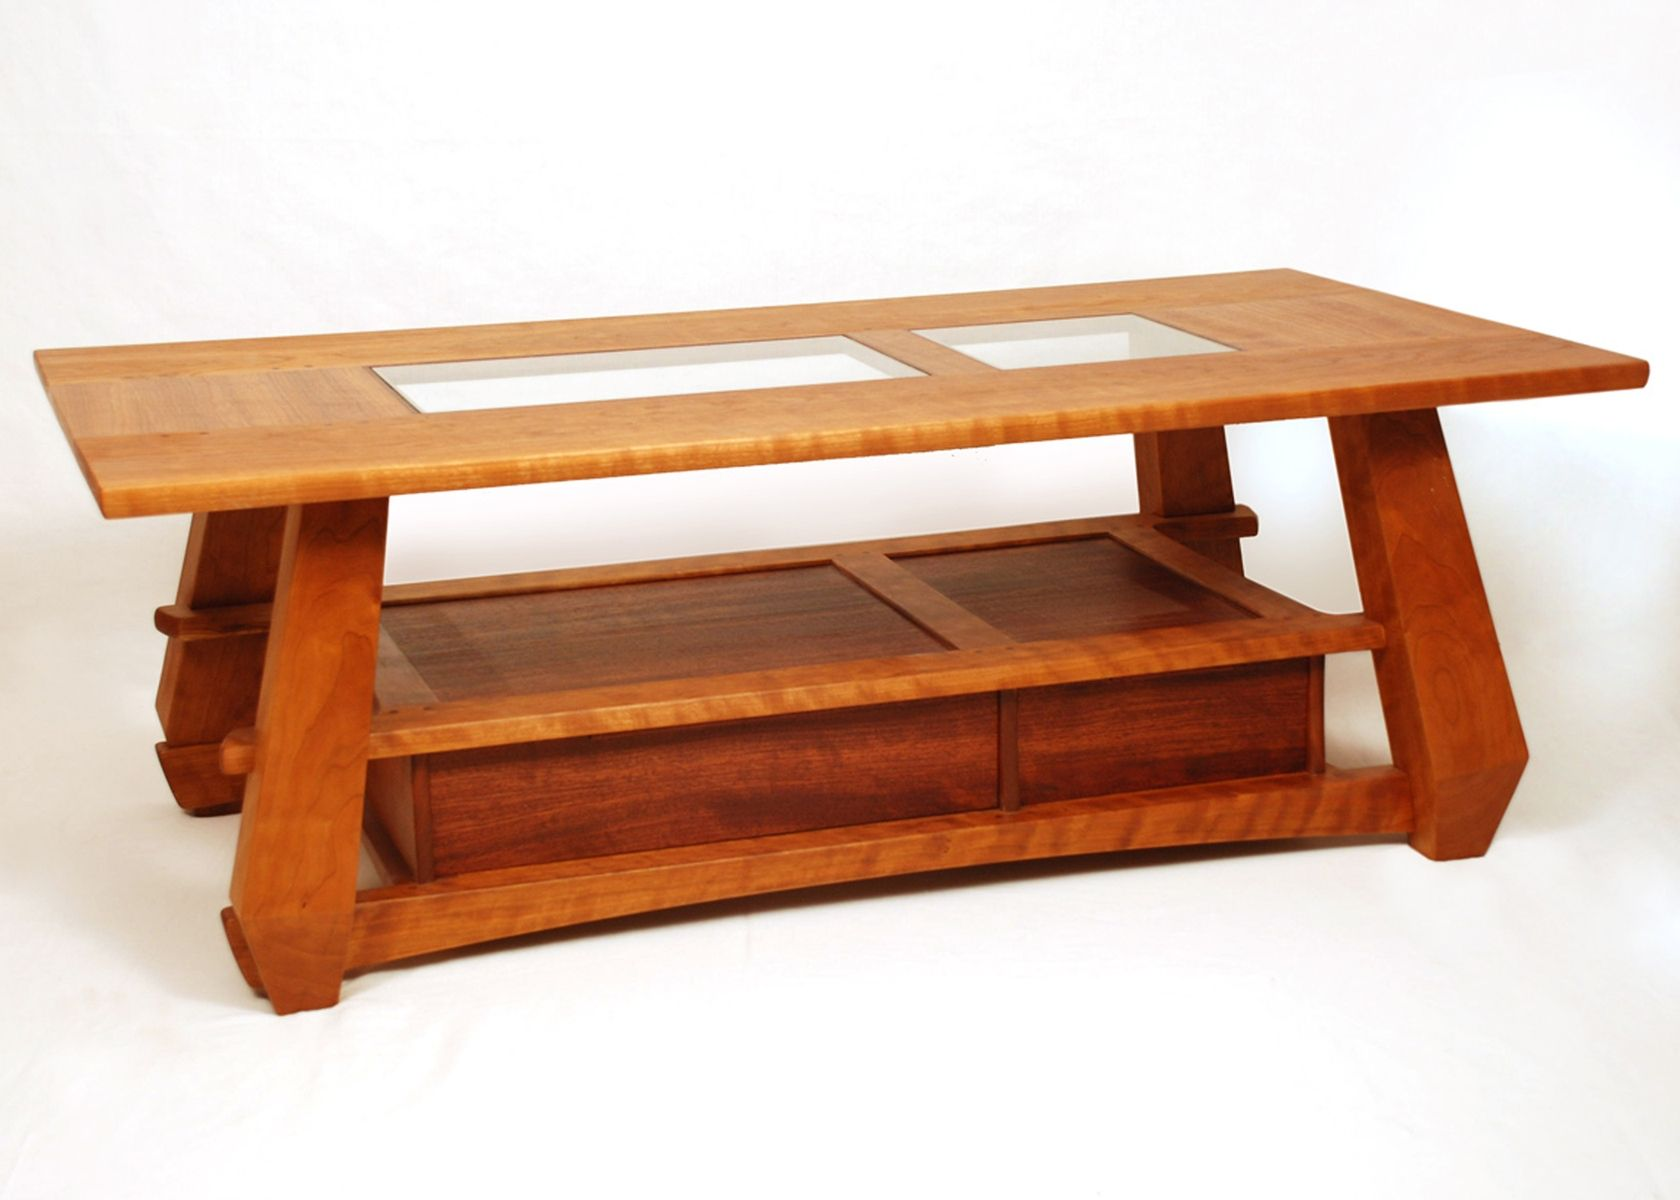 Handmade Cherry Coffee Table by Marrs Woodworking